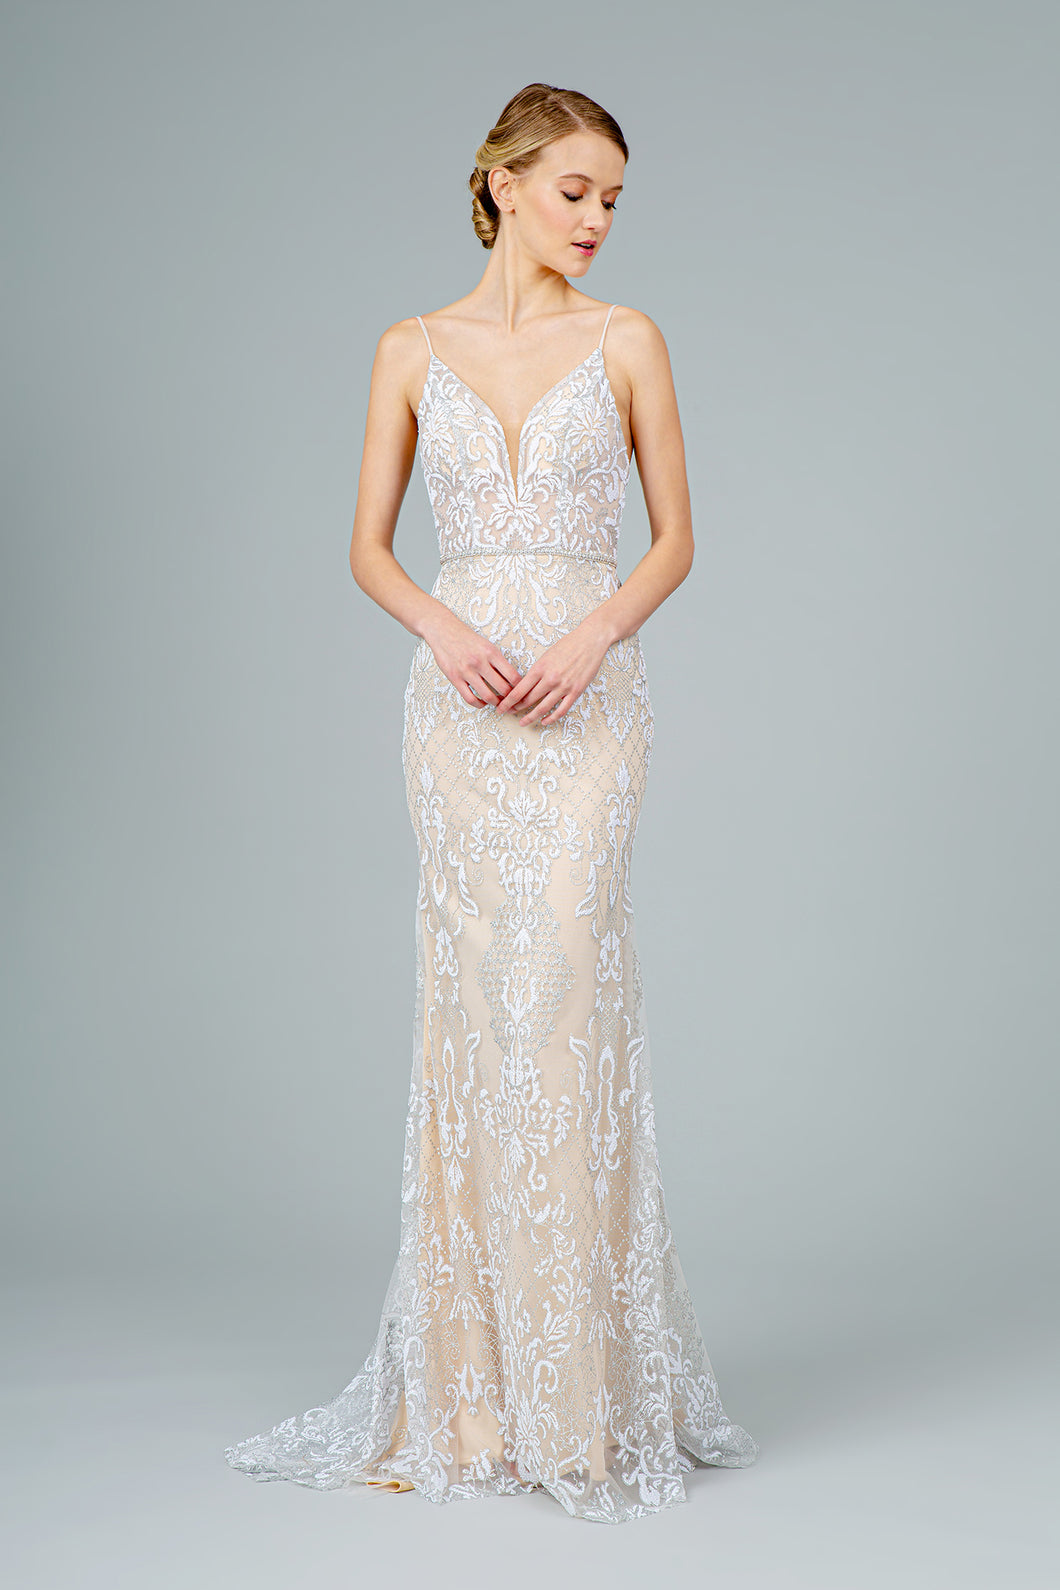 Tawny Wedding Dress Nude with Silver and White G2990XR SAMPLE IN STORE